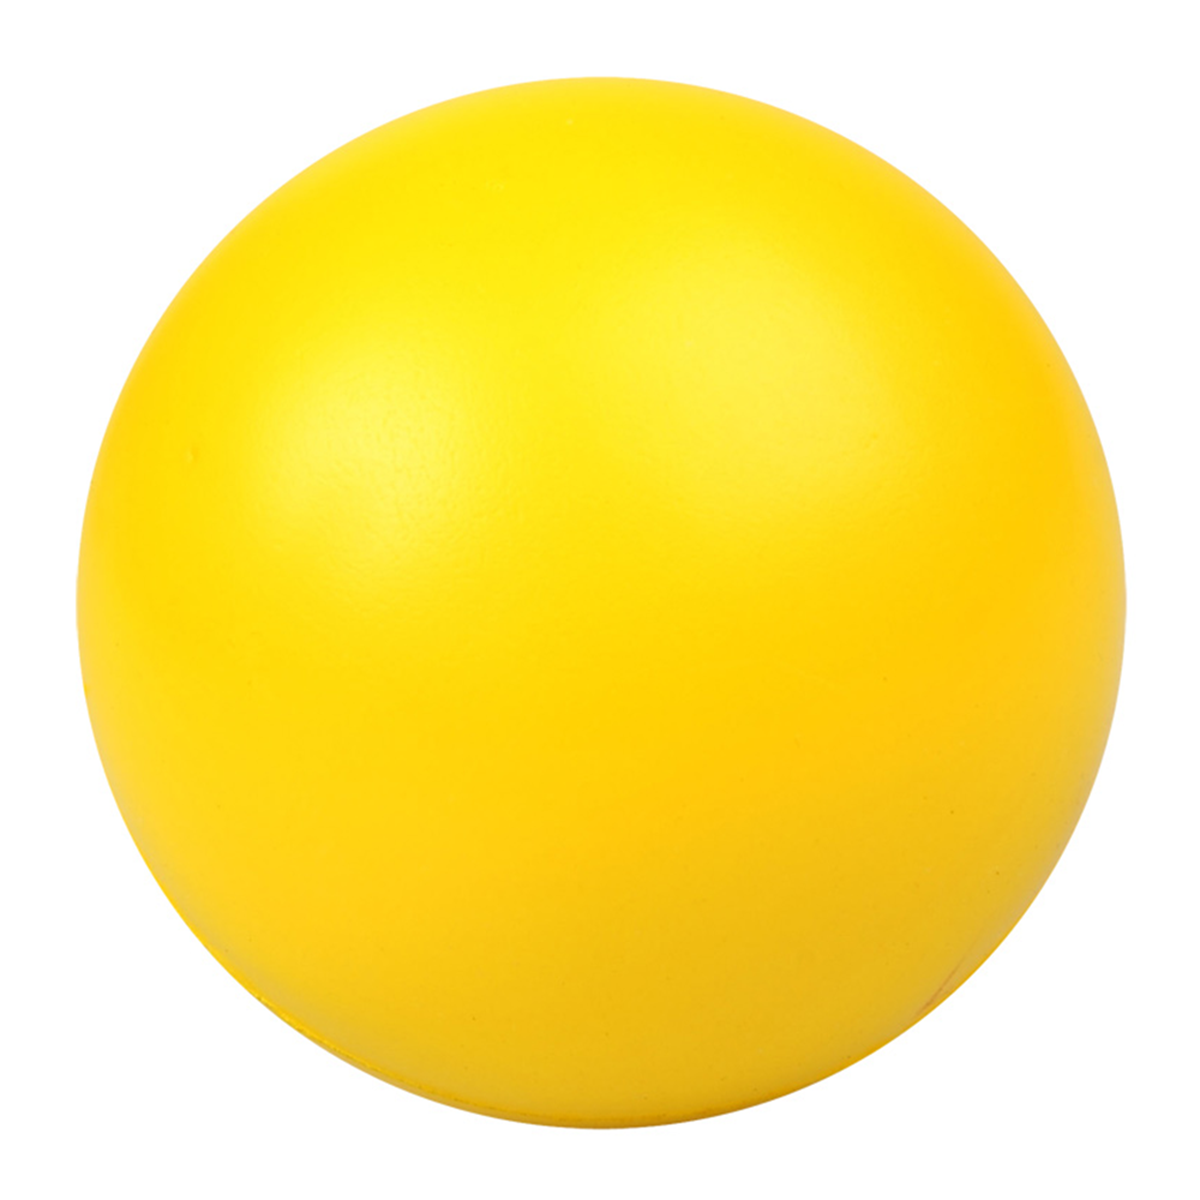 Yellow,Ball,Orange,Ball,Circle,Lacrosse ball,Sphere,Sports equipment.